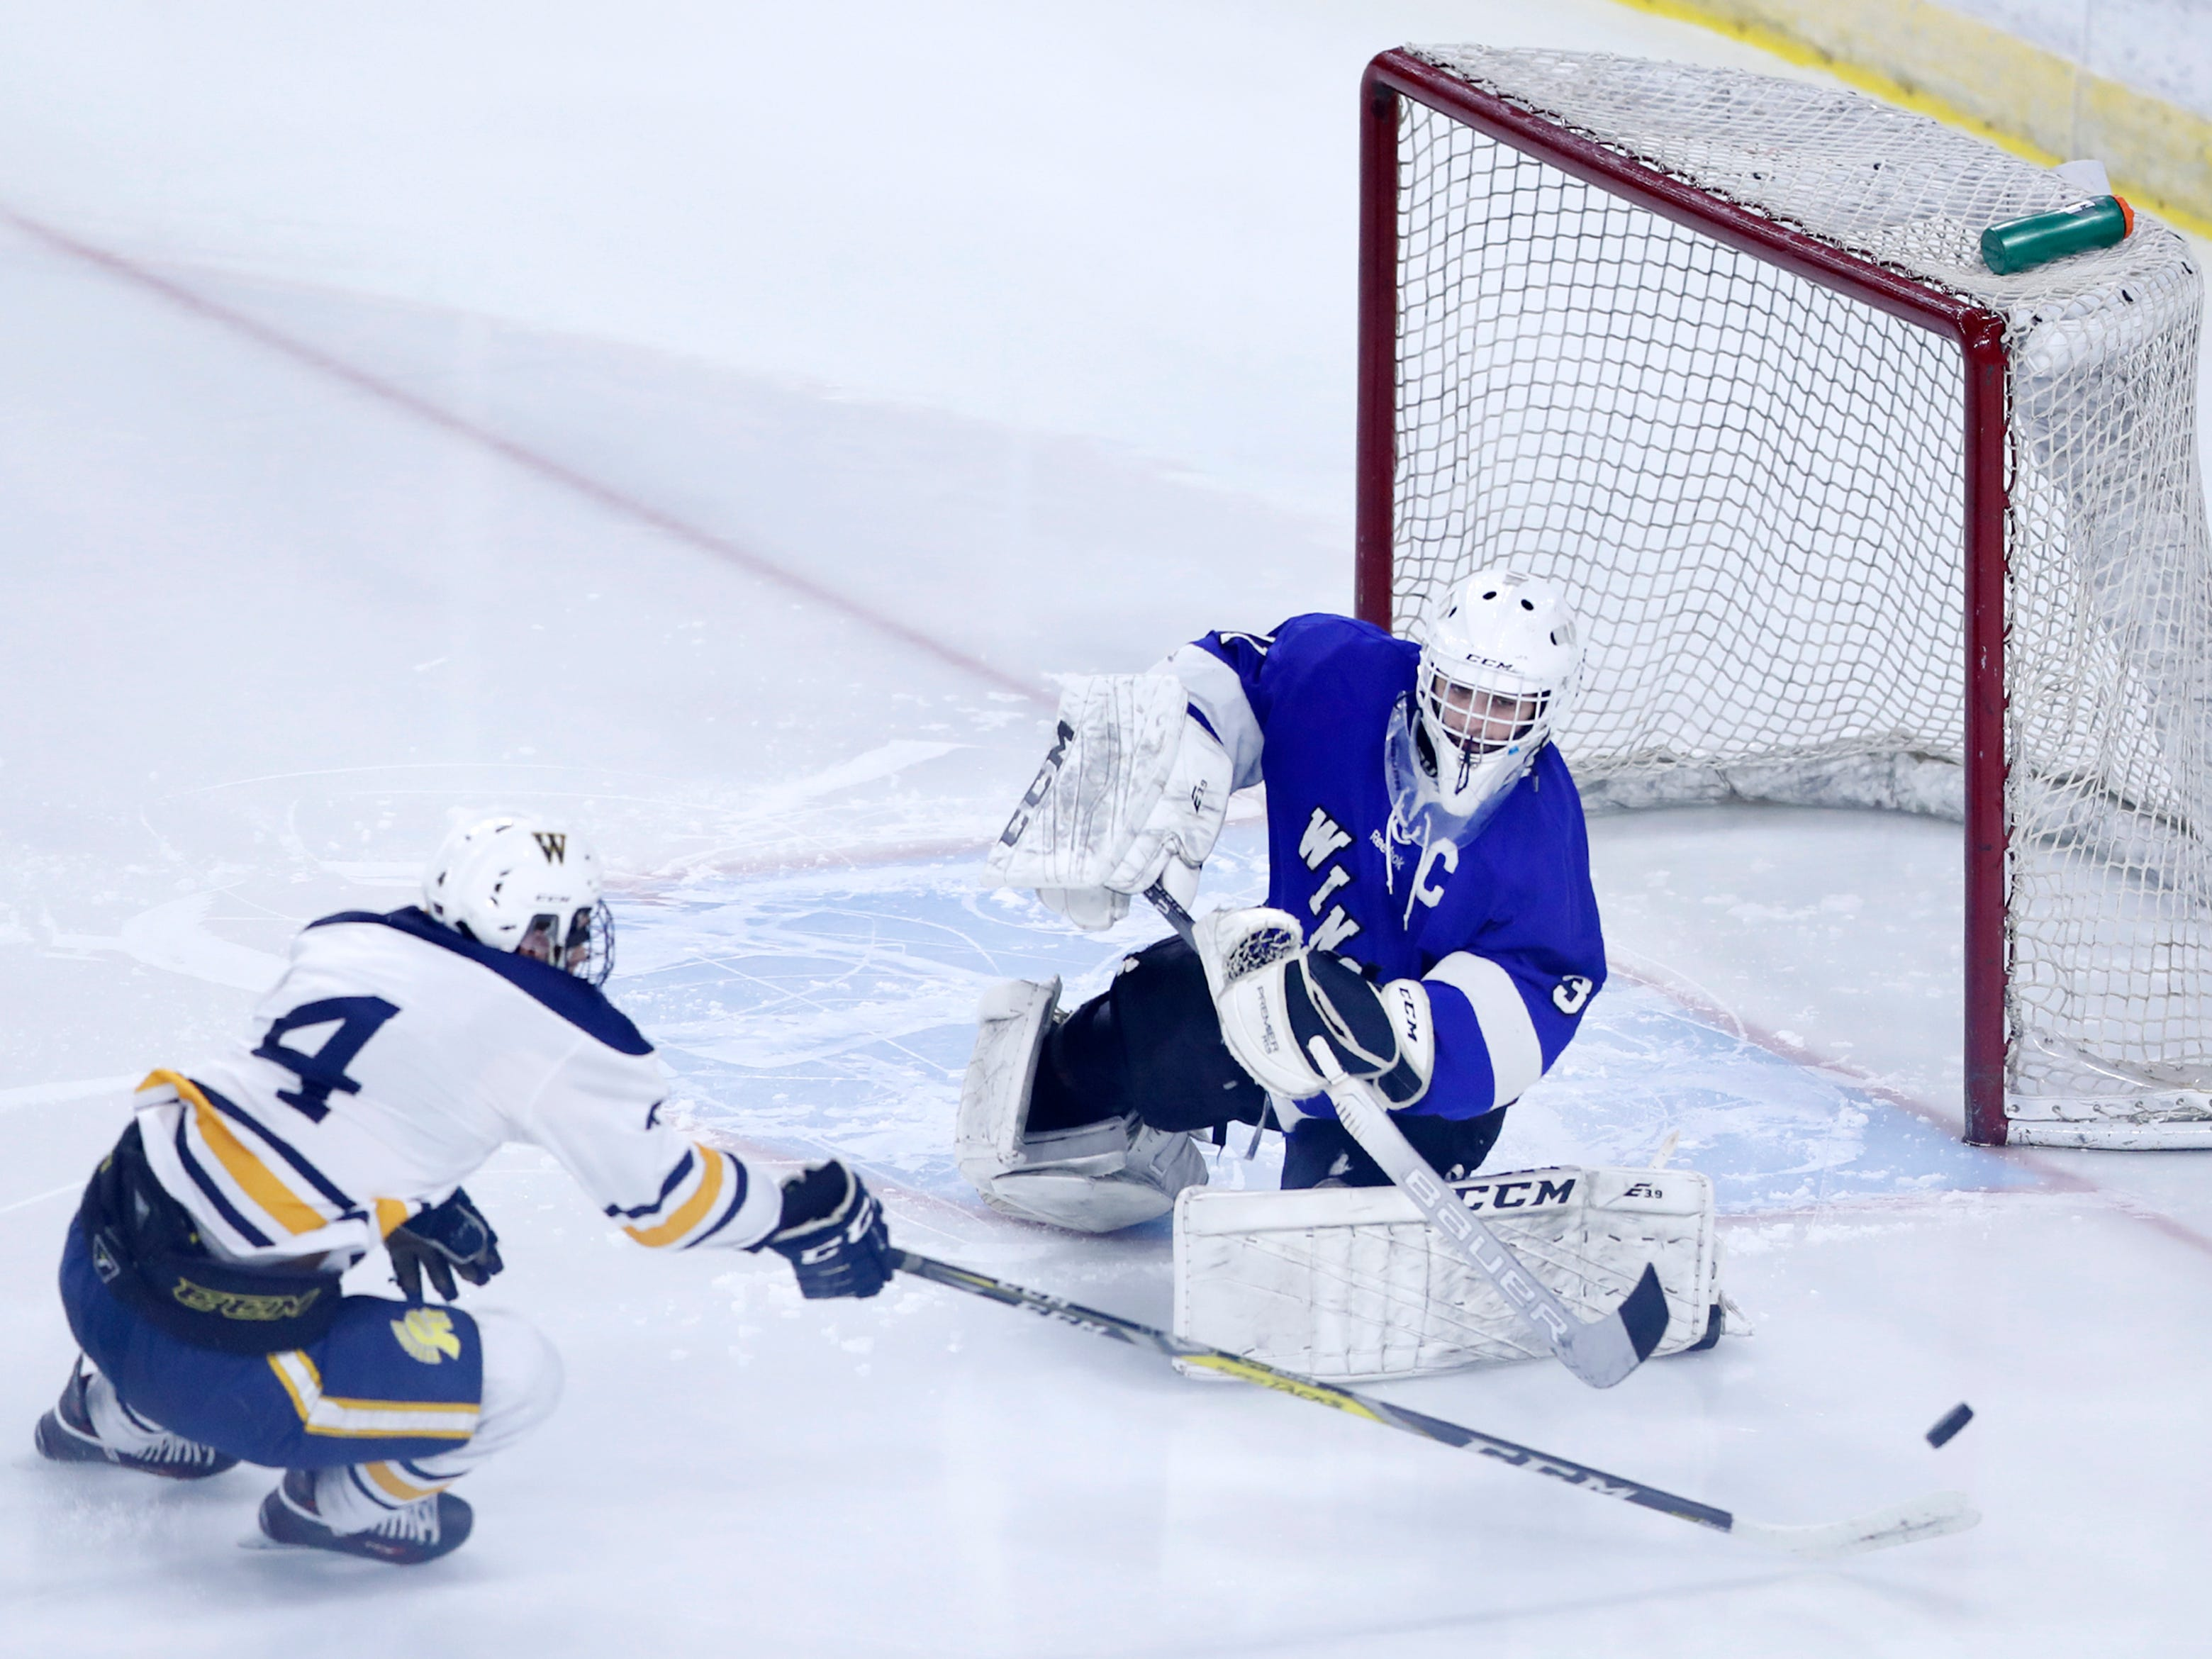 Wausau West's Marc Sippel tries to sneak the puck past Waukesha North Co-op's Garrett Larsen during the WIAA State Hockey Tournament quarterfinals Thursday, Feb. 28, 2019, at Veterans Memorial Coliseum in Madison, Wis.